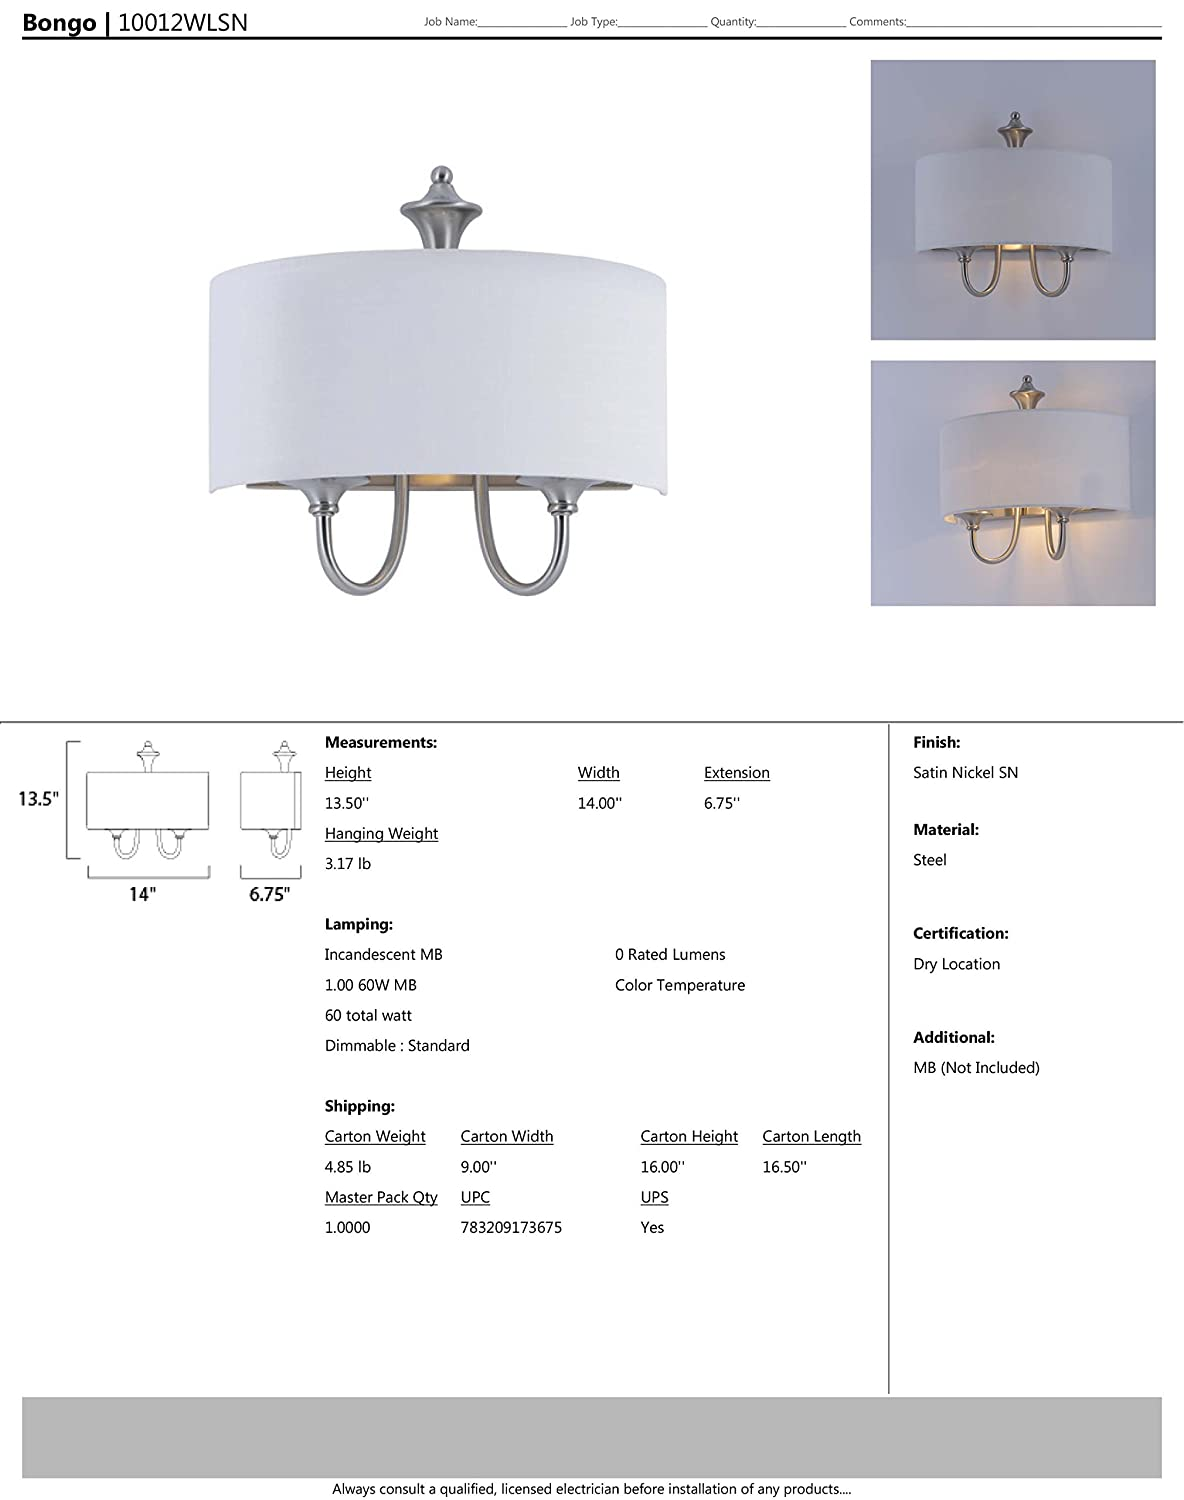 Glass Wet Safety Rating UV 8W Max. MB Incandescent Incandescent Bulb Standard Triac//Lutron or Leviton Dimmable Satin Nickel Finish 1680 Rated Lumens Maxim 10012WLSN Bongo 1-Light Wall Sconce 3000K Color Temp Rated Polycarbo Shade Material